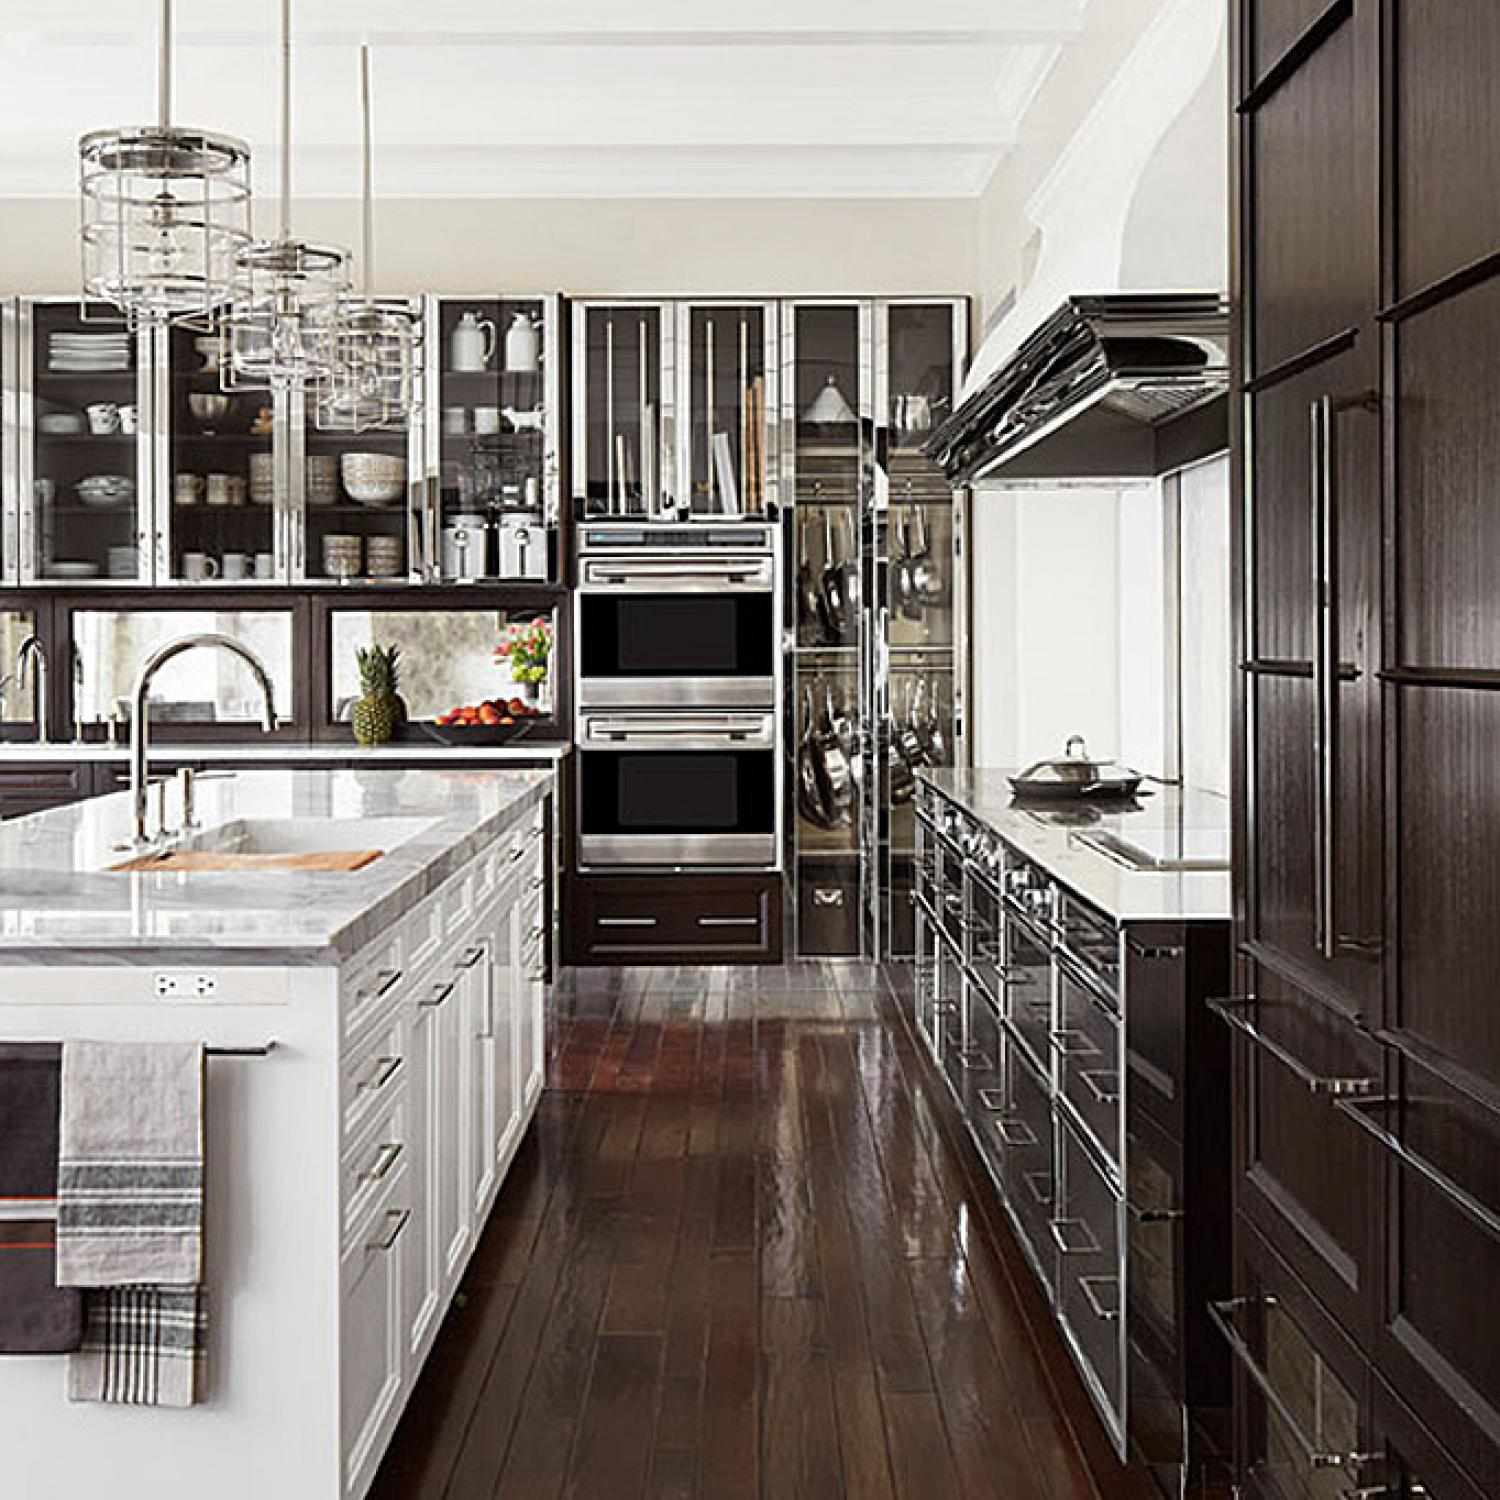 kitchens designed entertaining page=4 2123